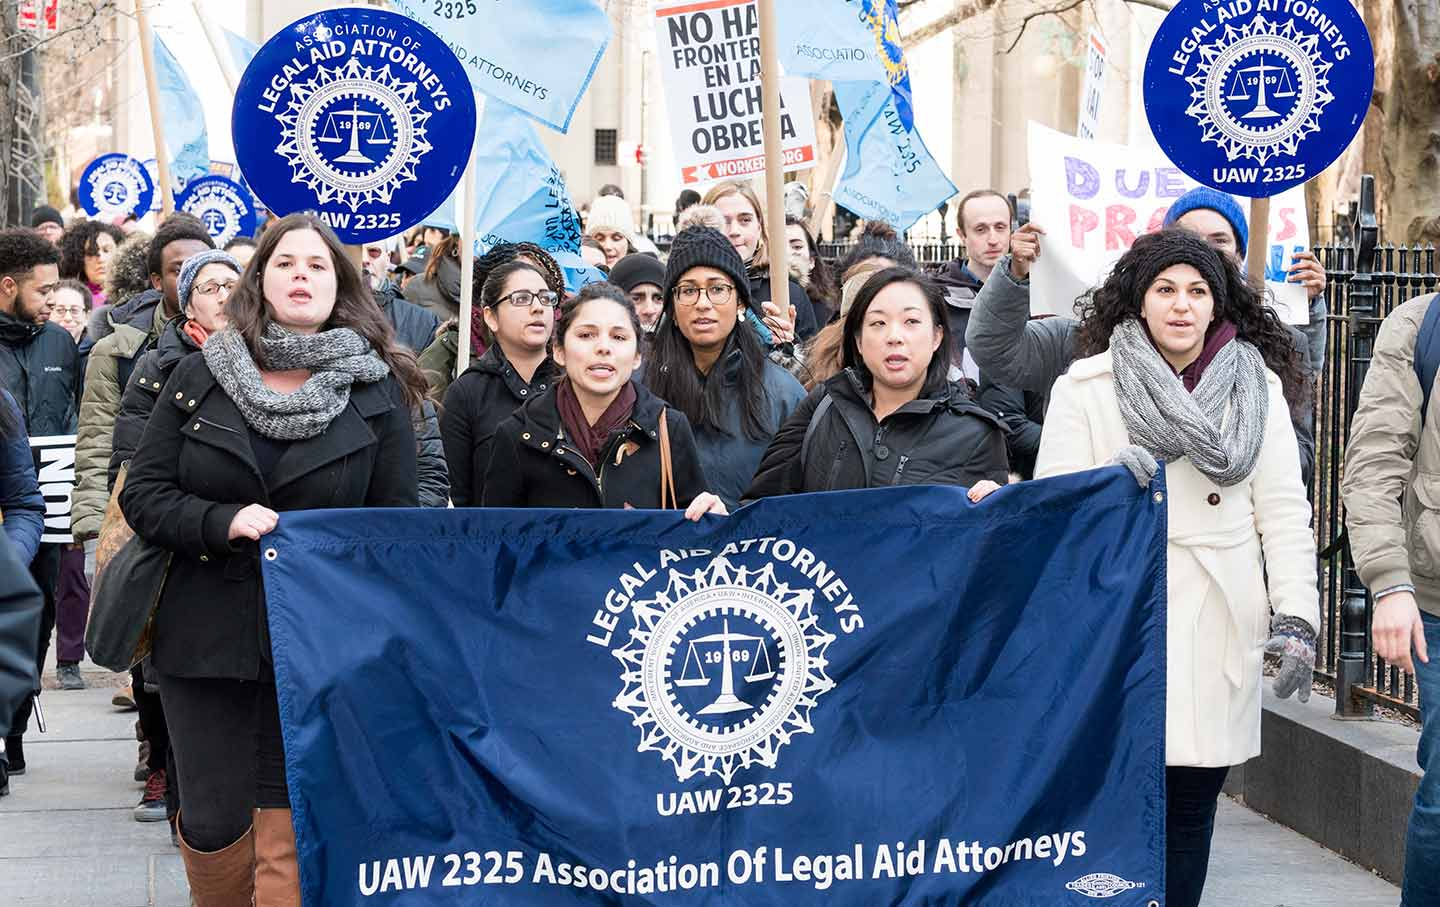 Legal Aid rally against ICE